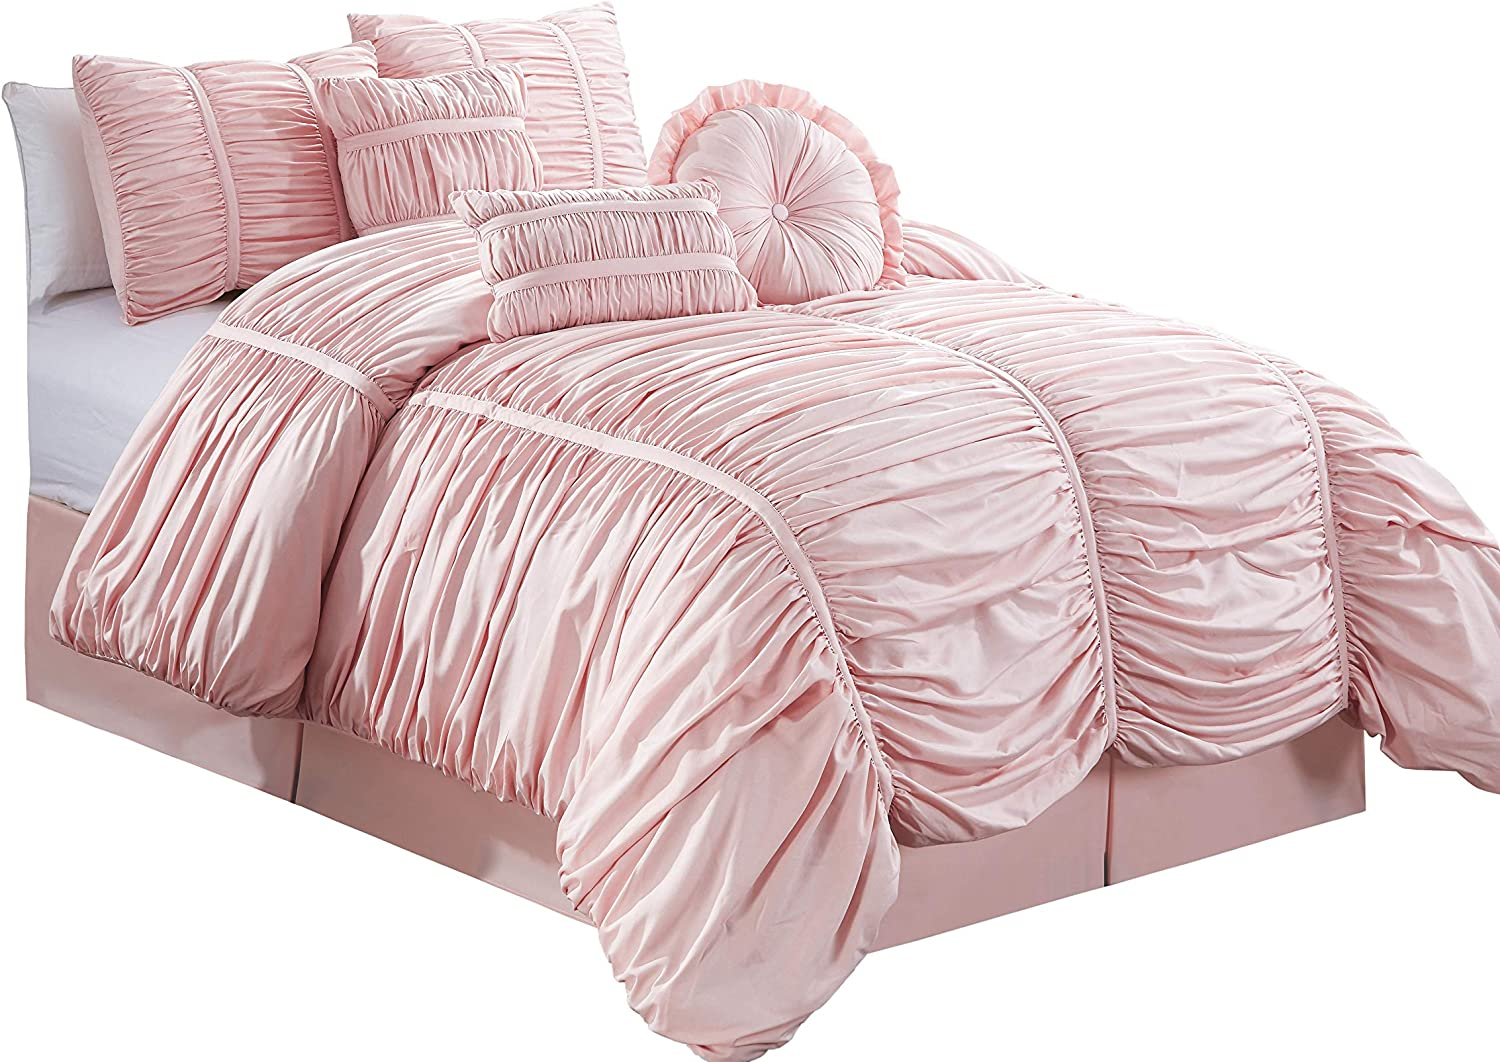 Chezmoi Collection 7-Piece Pink Chic Ruched Comforter Set (with Throw Pillows) (Queen)